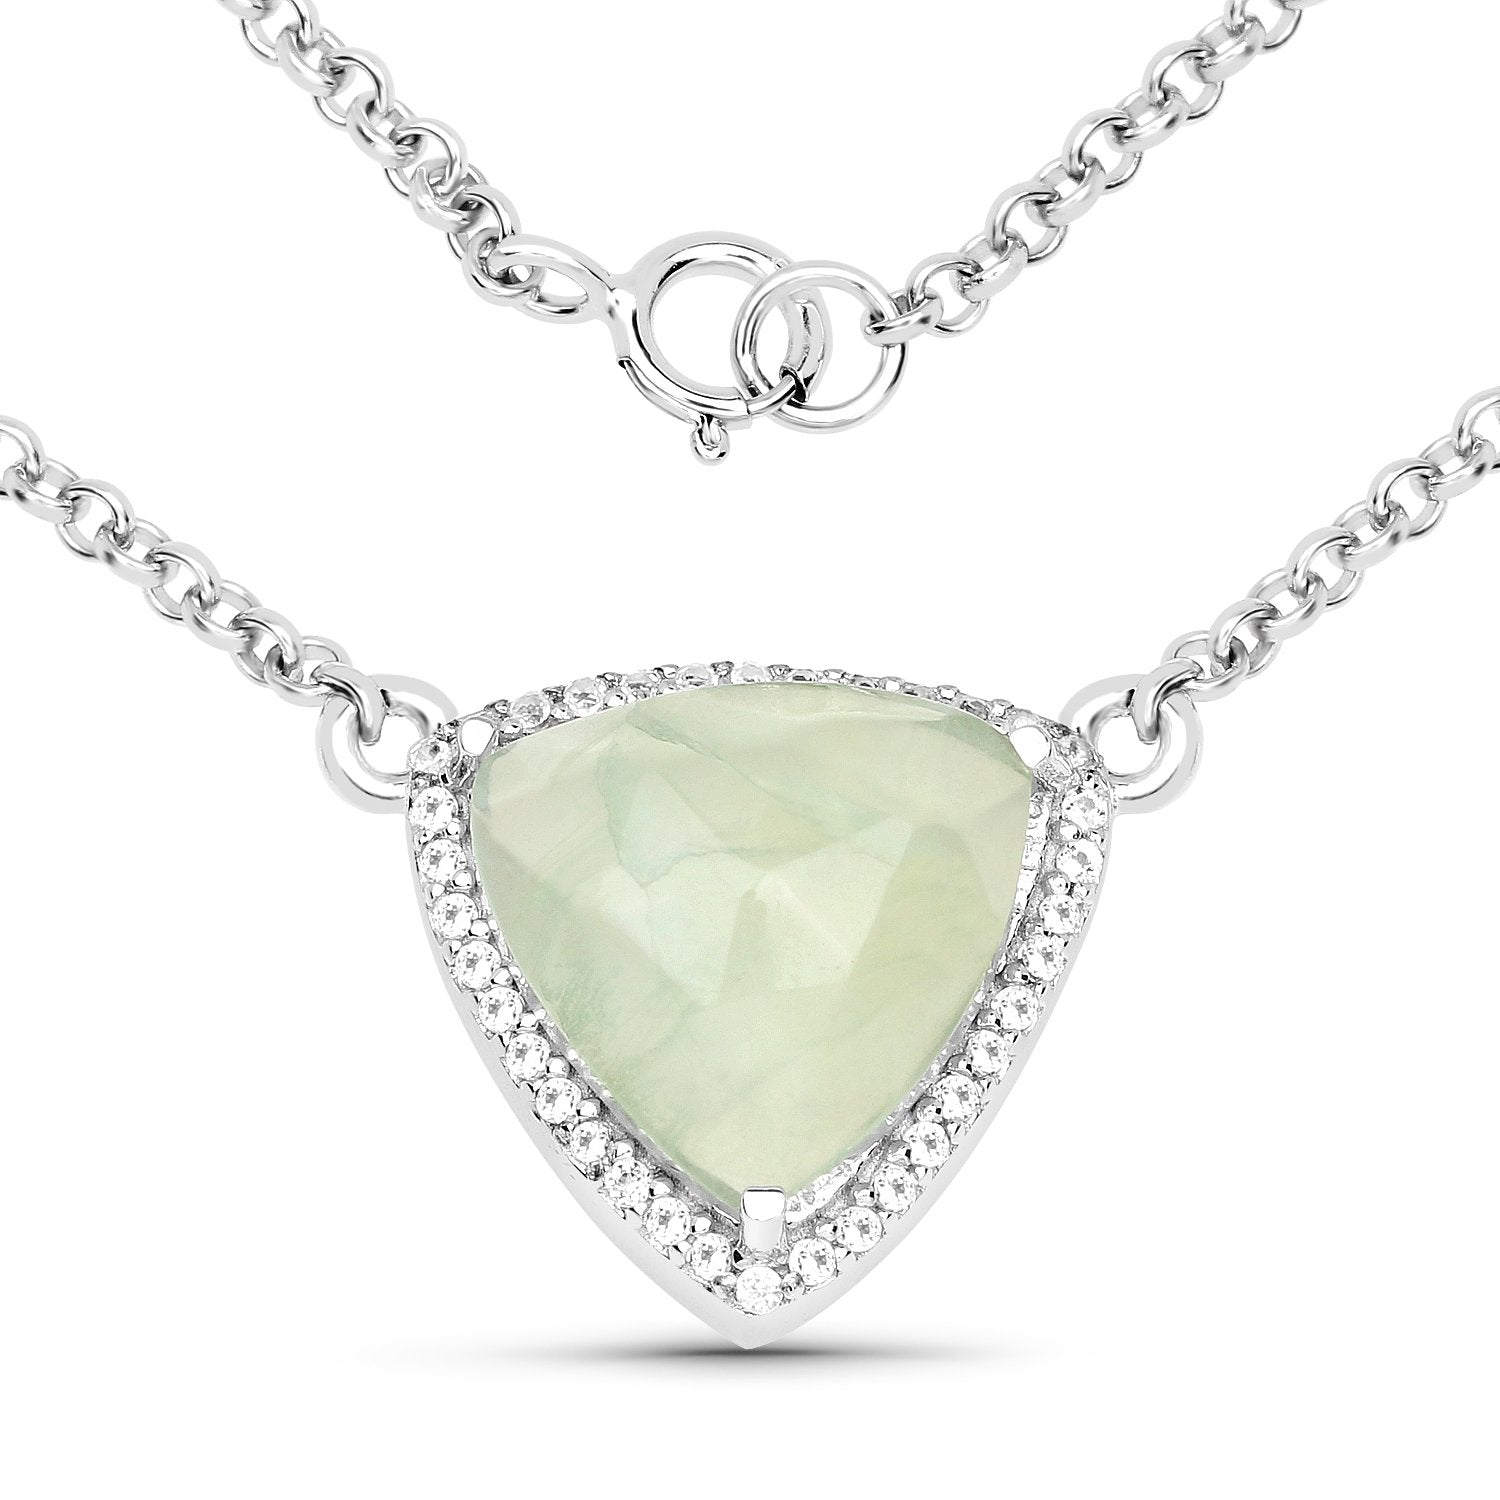 LoveHuang 4.37 Carats Genuine Prehnite and White Topaz Pendant Solid .925 Sterling Silver With Rhodium Plating, 18 Inch Chain